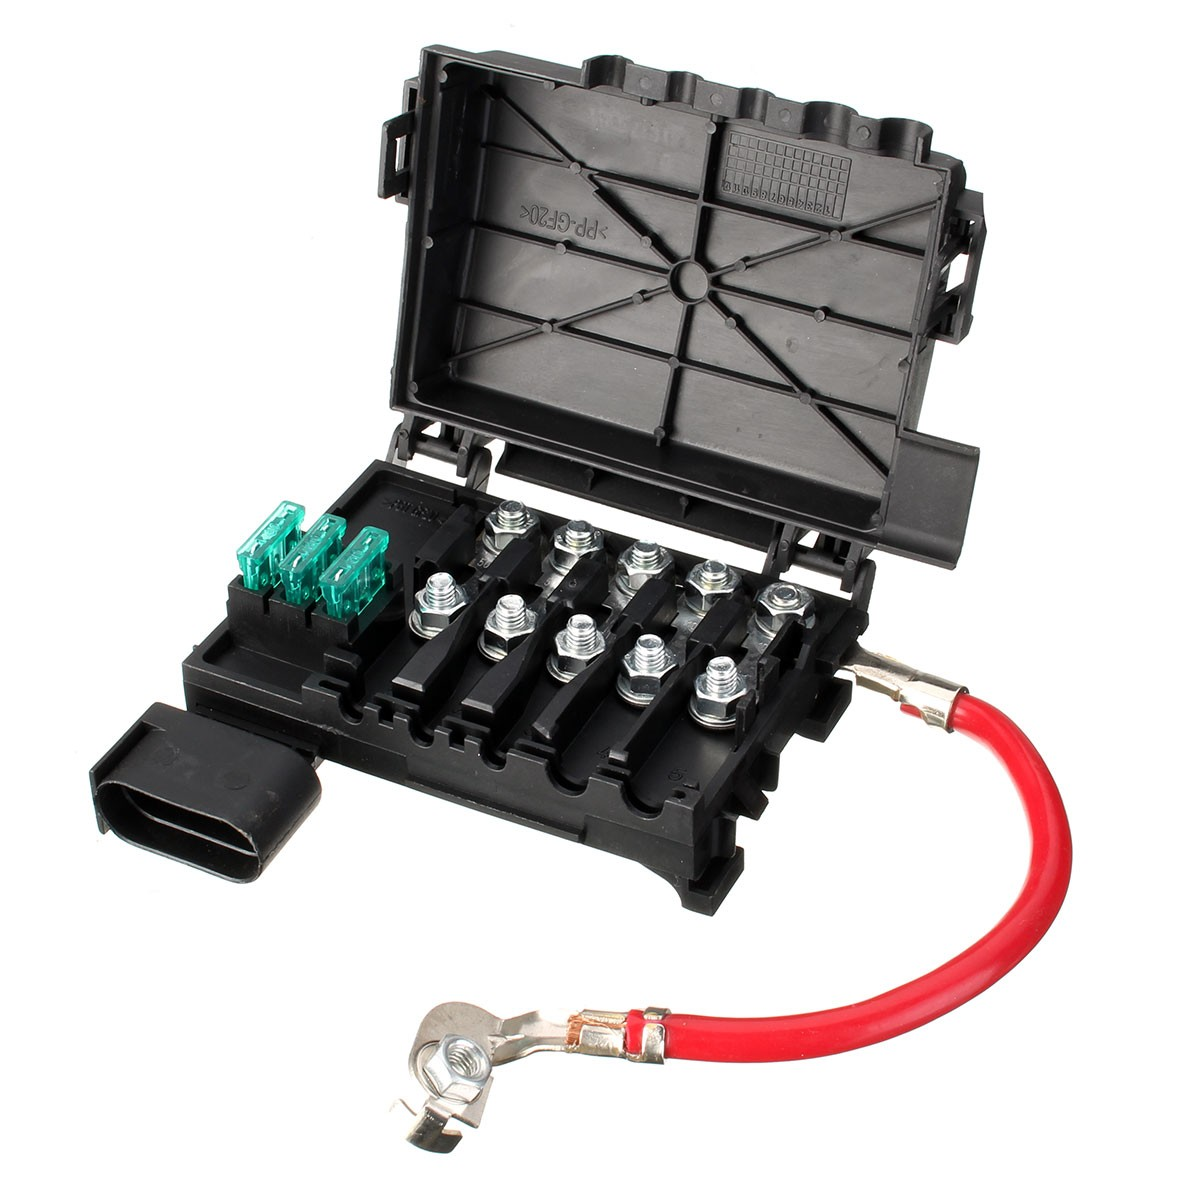 Jetta Battery Fuse Box 2002 Vw Beetle Location Terminal Fit For Bora Golf Jett Walmart Com Rh Mk4